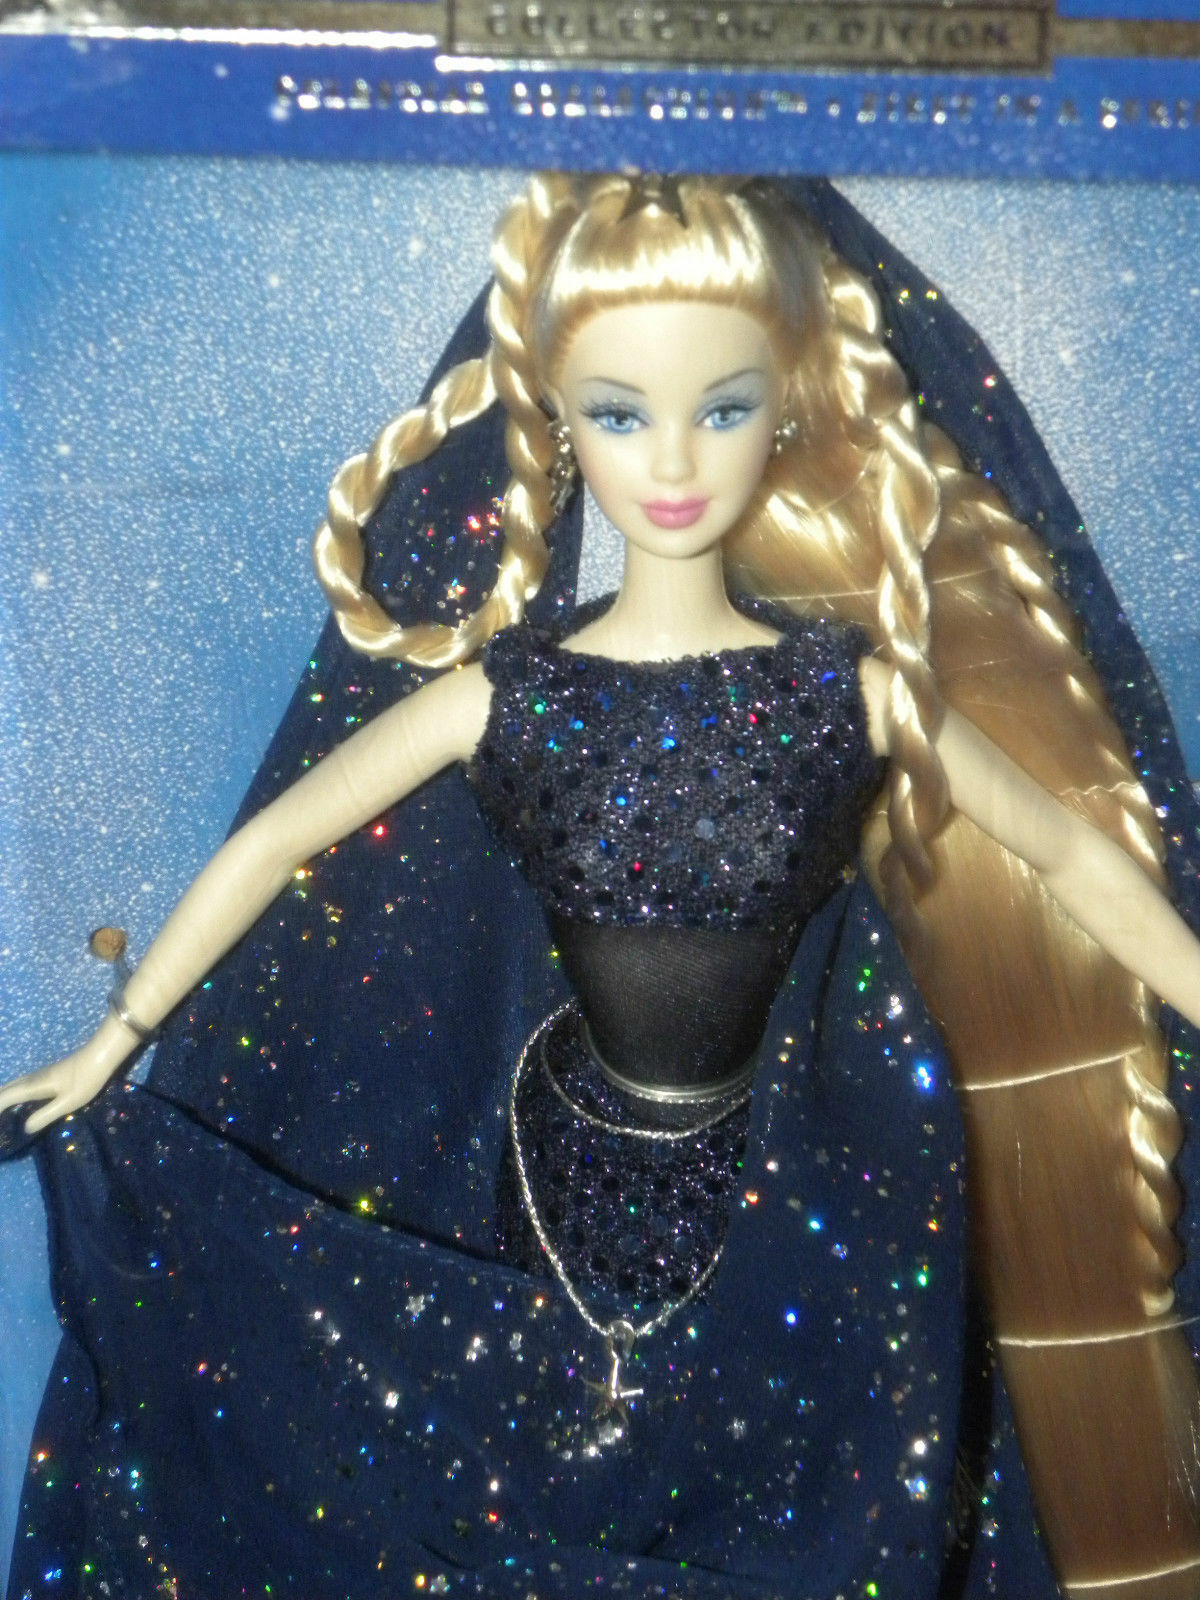 @-BARBIE EVENING STAR RAR/SELTEN CELESTIAL COLLECTORS EDITION/DESIGNE PUPPE NRFB